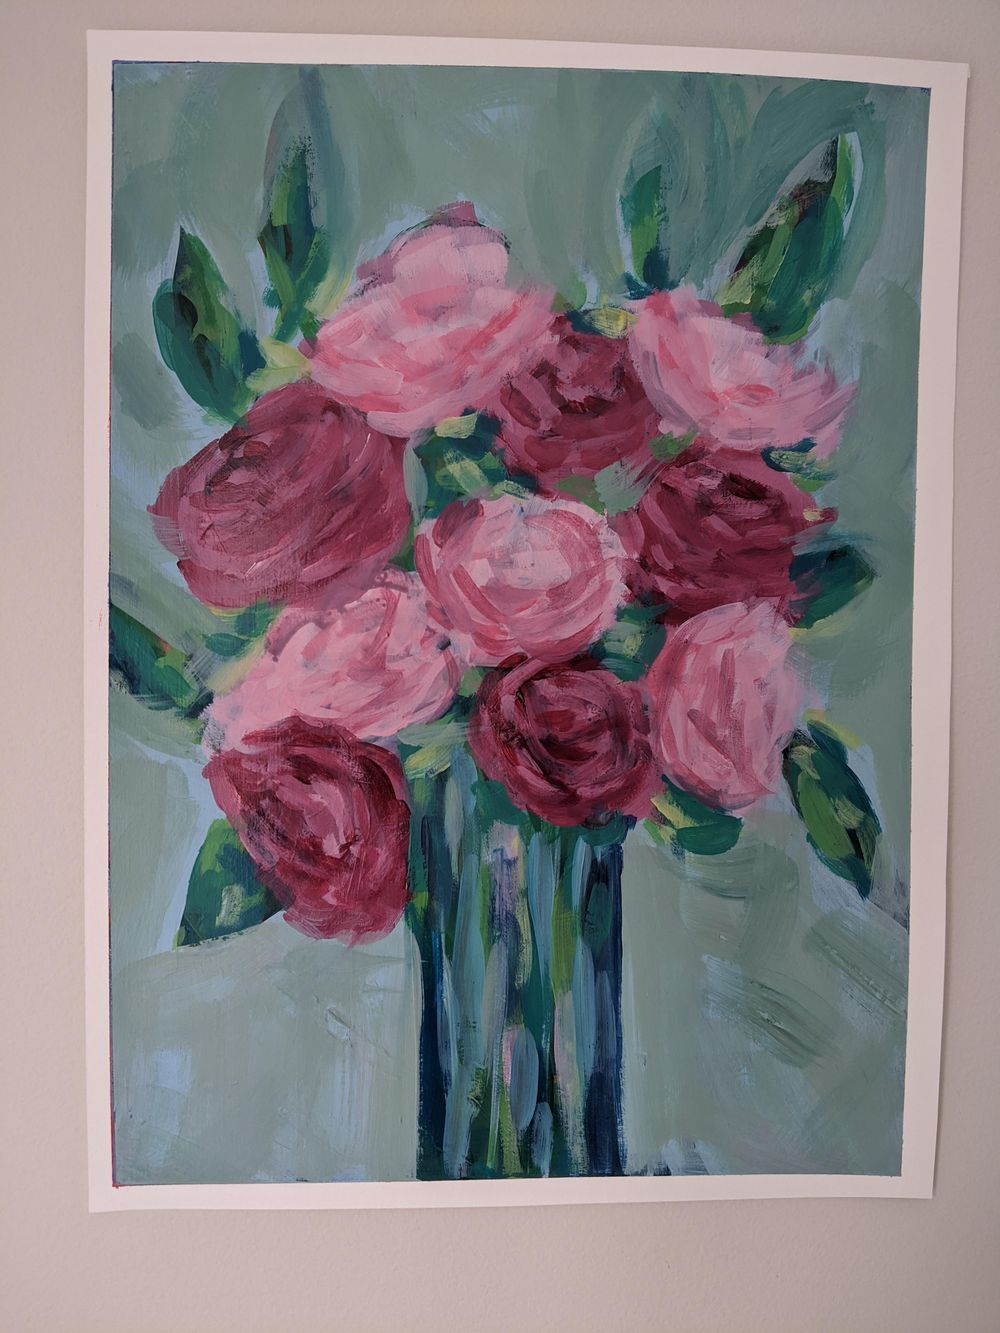 Abstract flowers - image 2 - student project